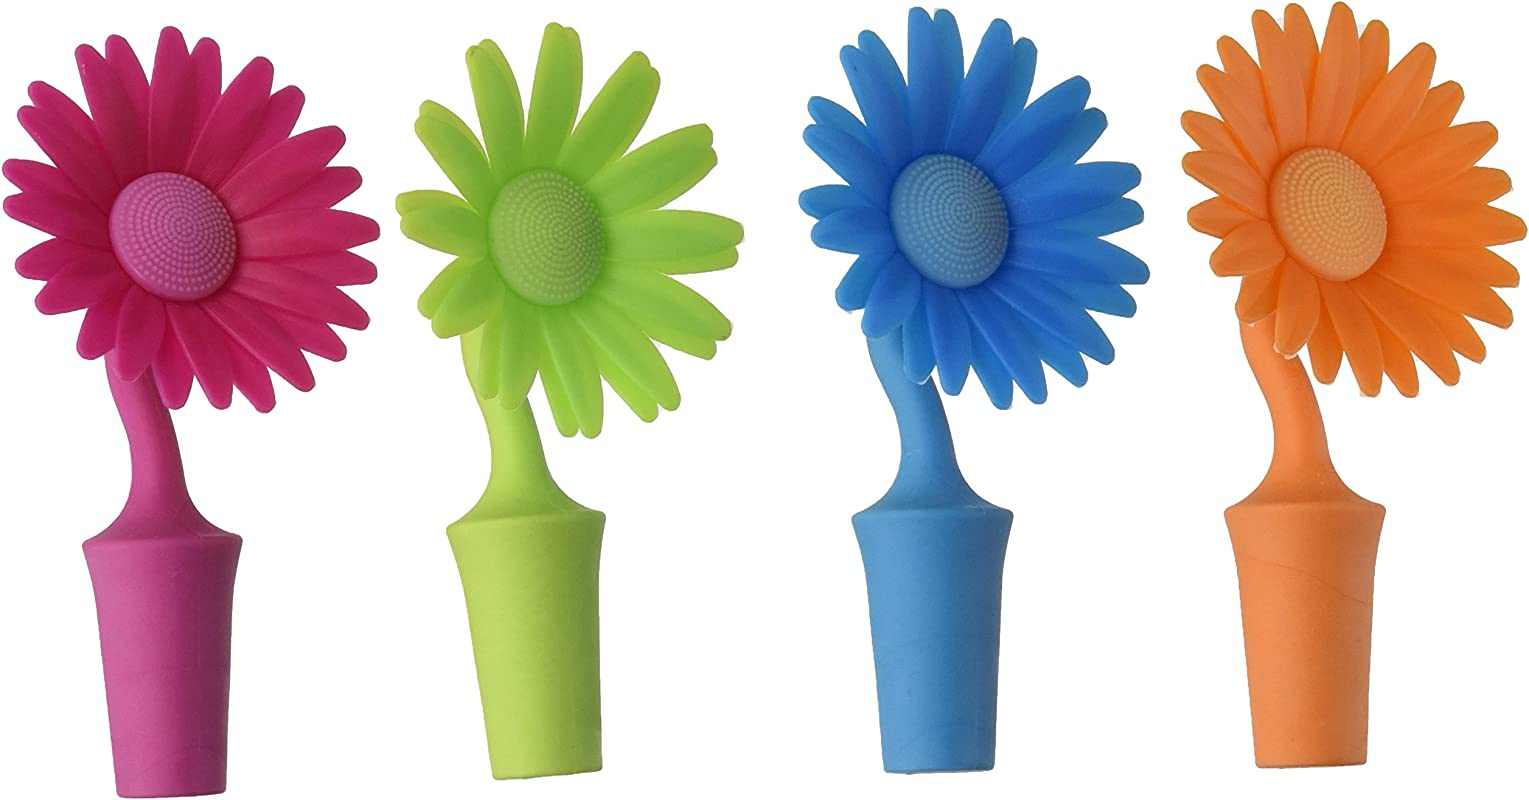 Southern Homewares Flower Bottle Stoppers 4 Pack Made Of Silicone